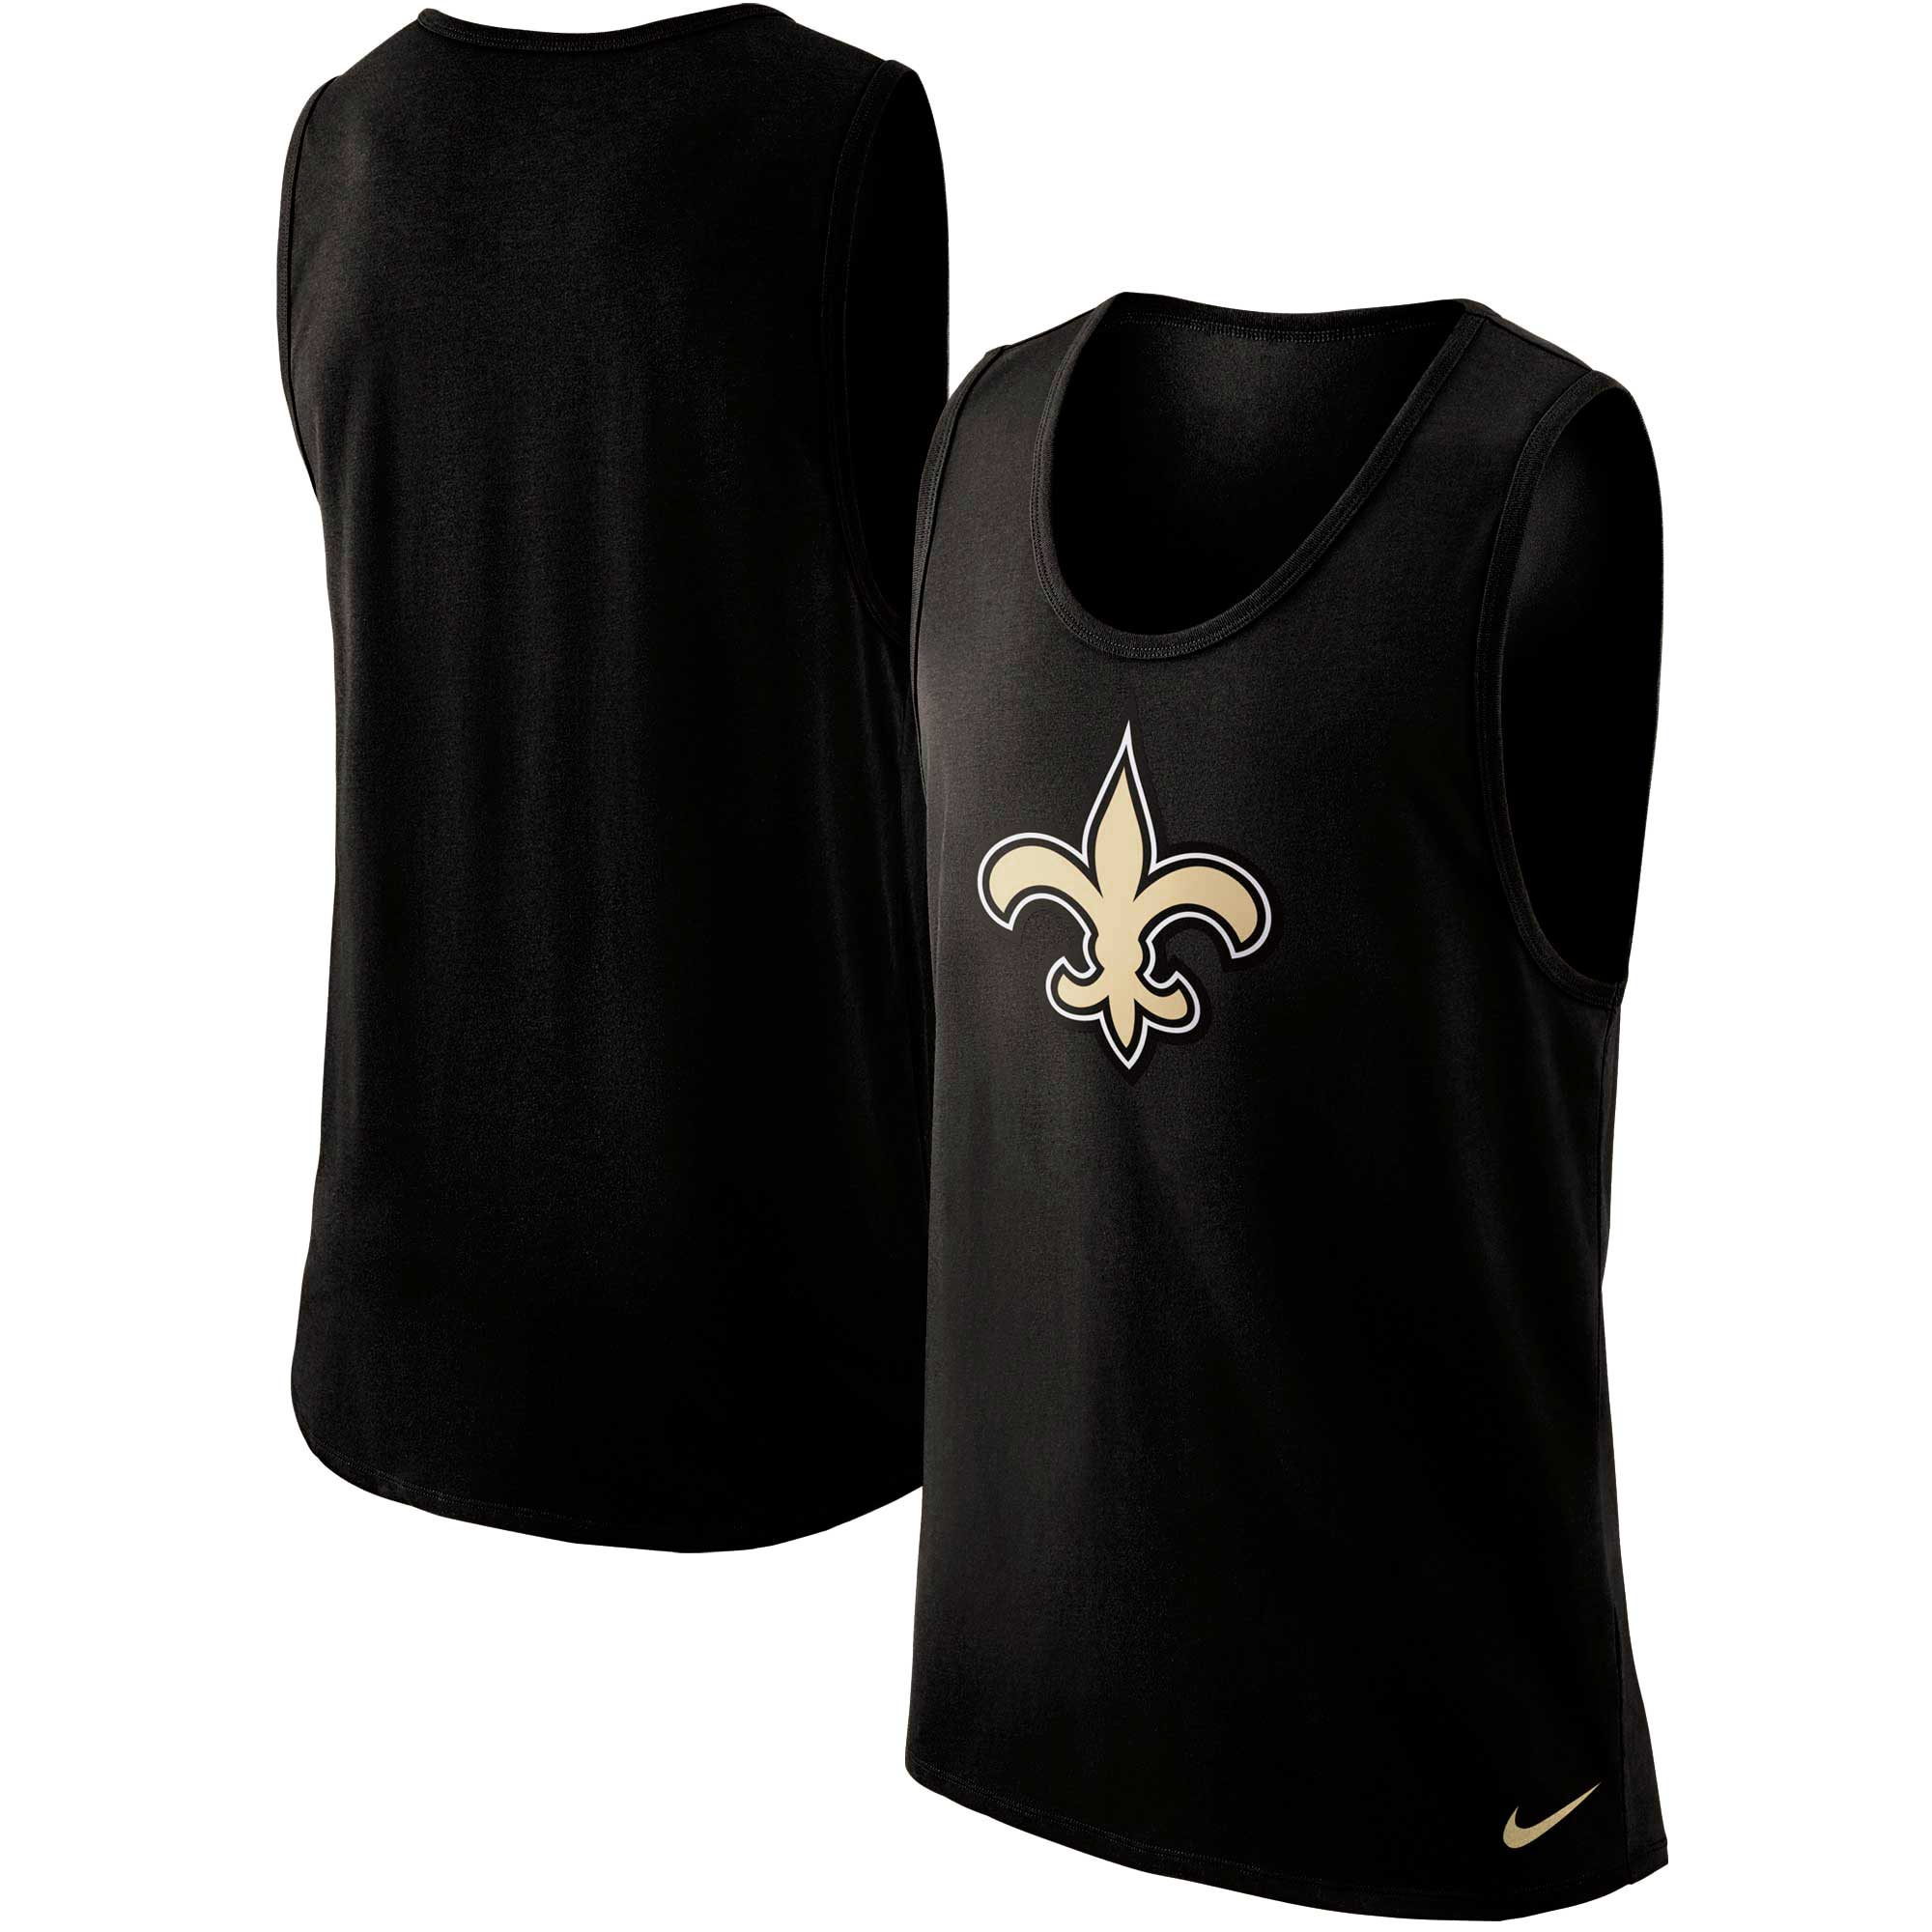 New Orleans Saints Nike Cotton Core Performance Tank Top - Black